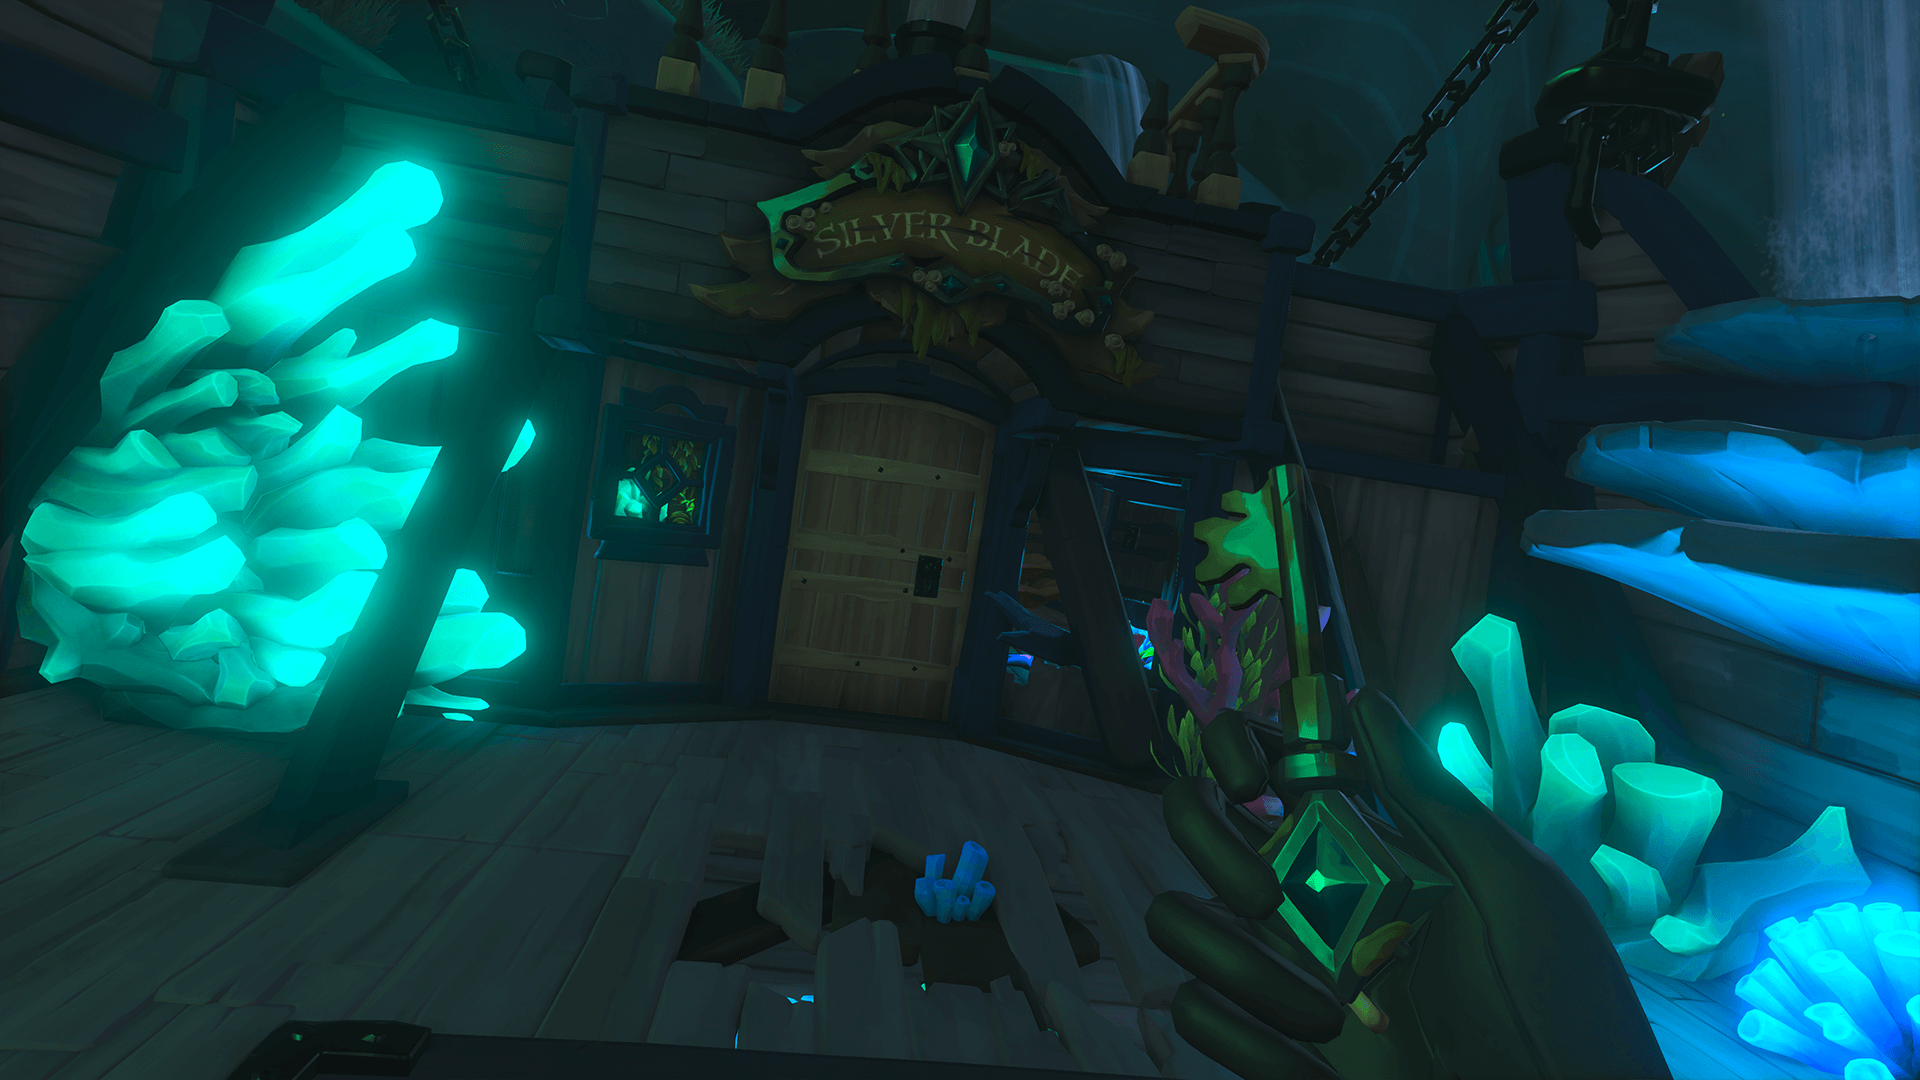 Silver Blade Key and Captains Cabin-Chest of Eternal Sorrow Commendation